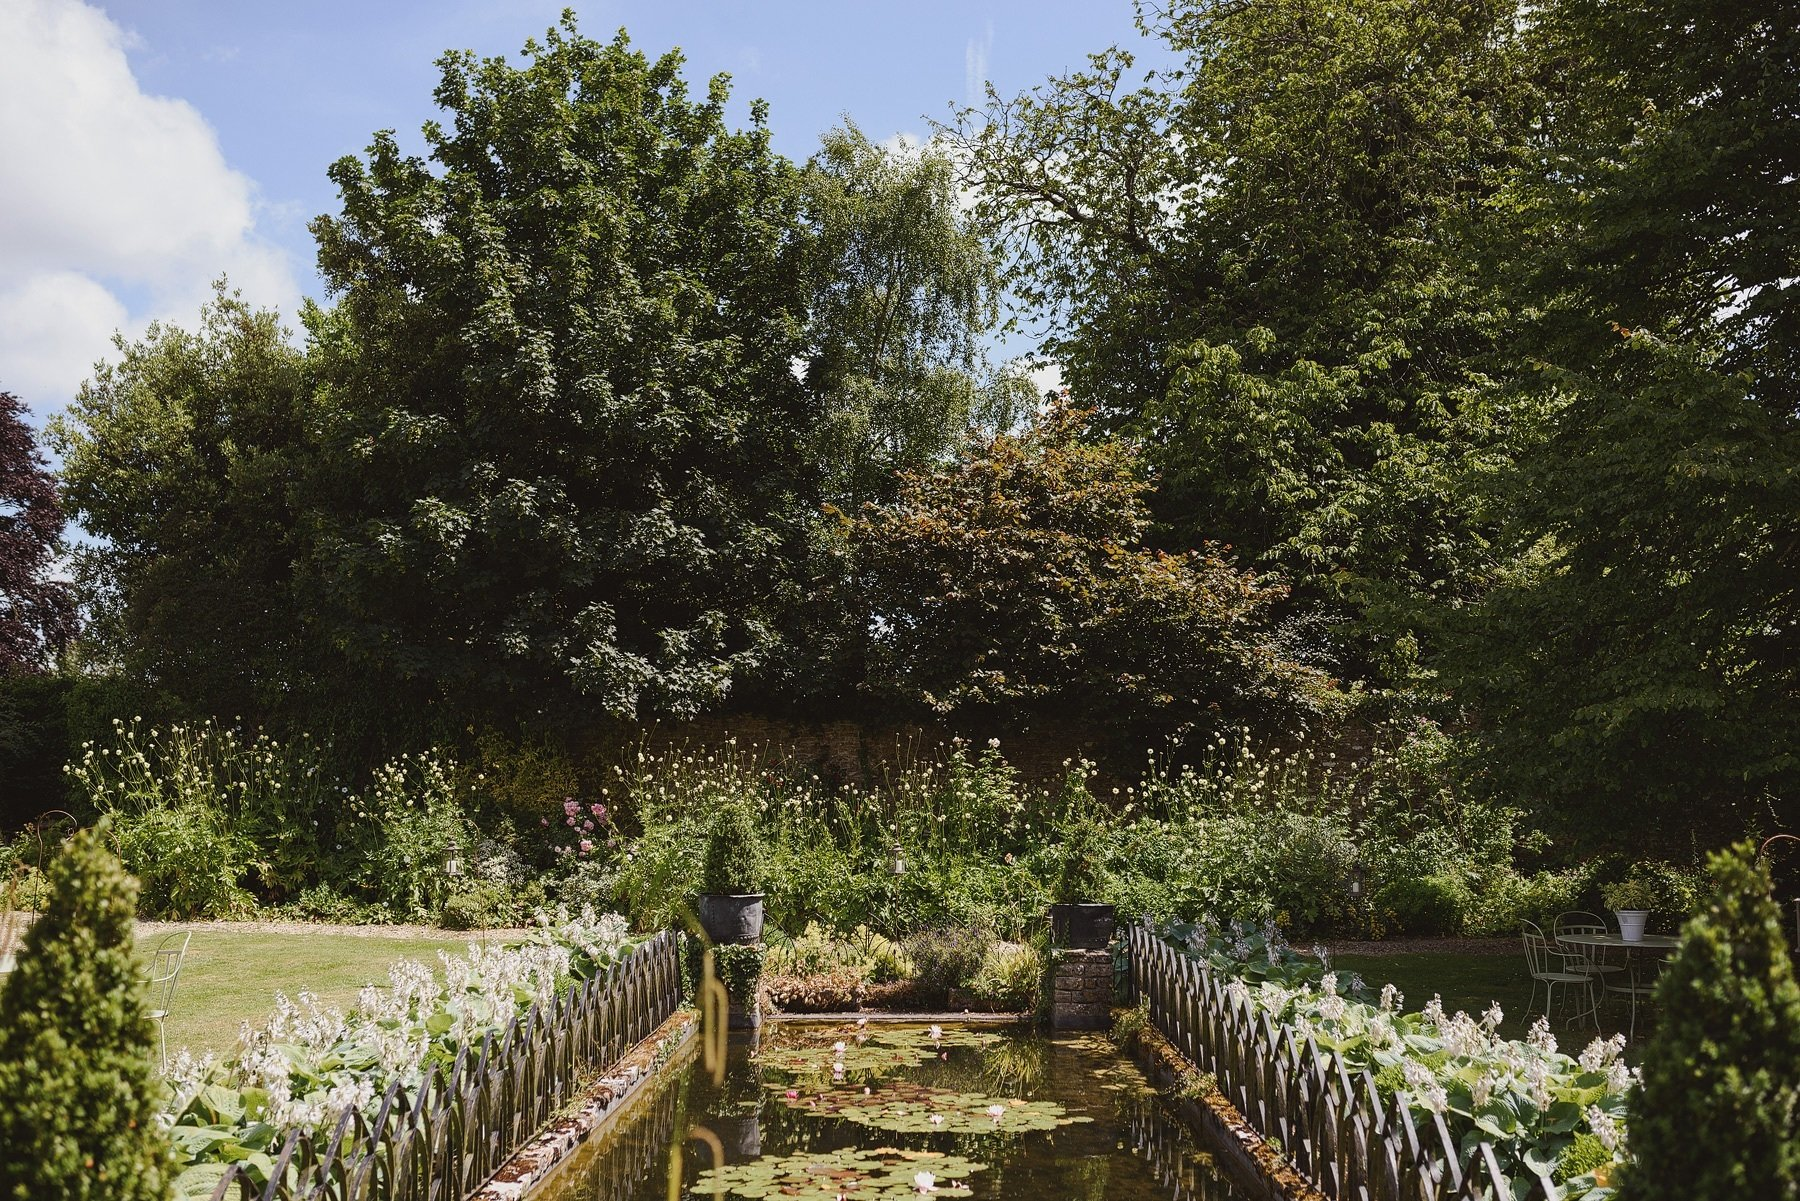 gardens at the rectory in crudwell